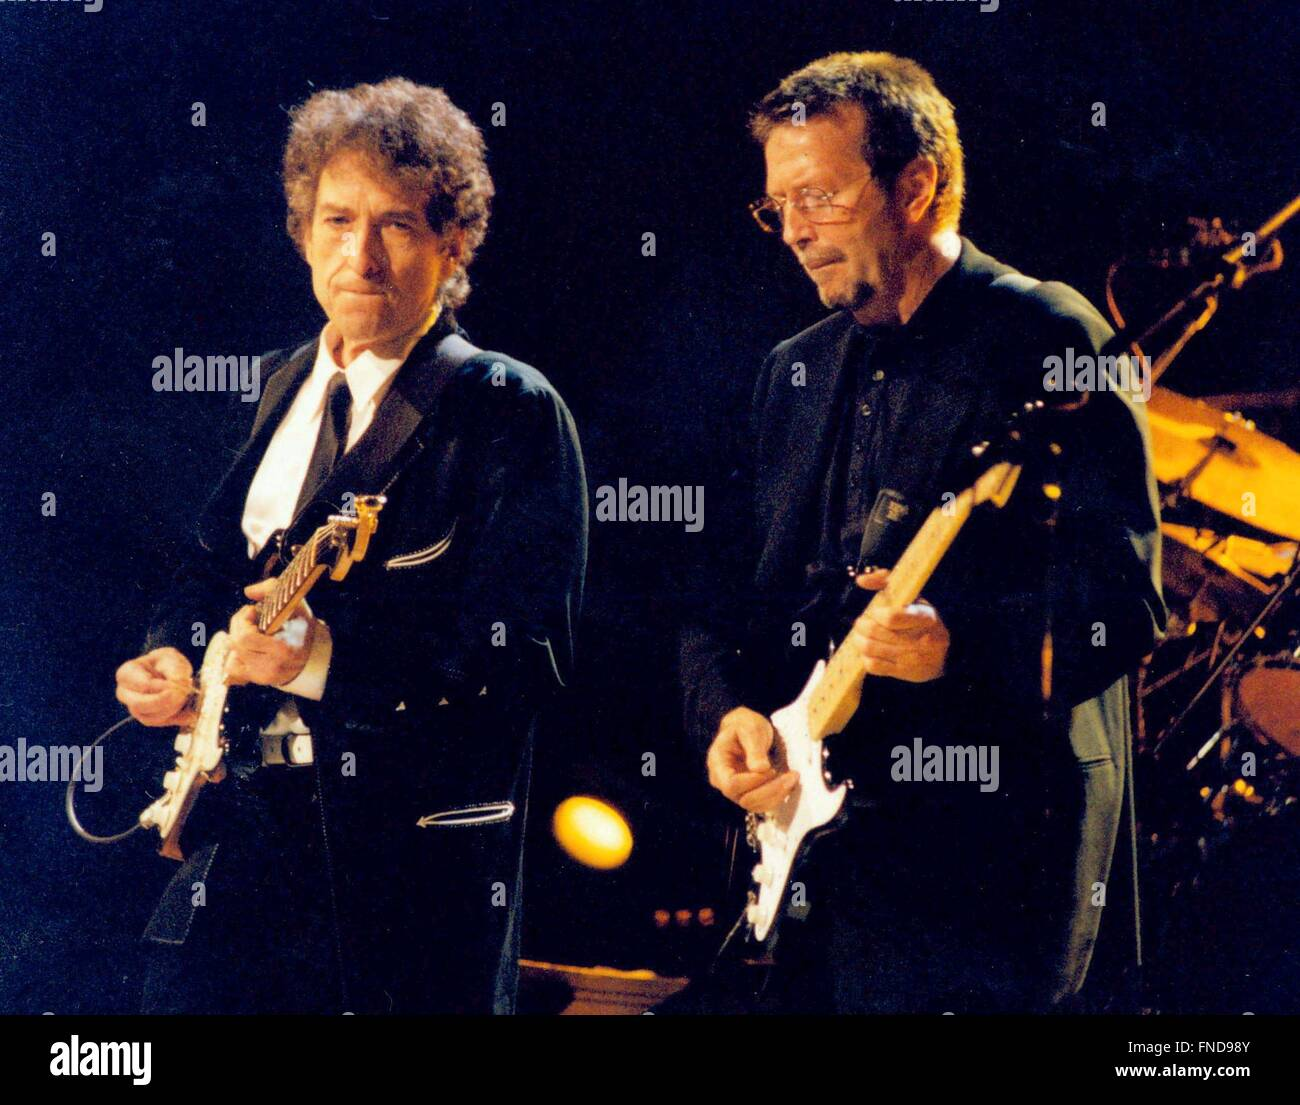 Eric Clapton And Friends To Benefit The Crossroads Centere In Stock Photo Royalty Free Image